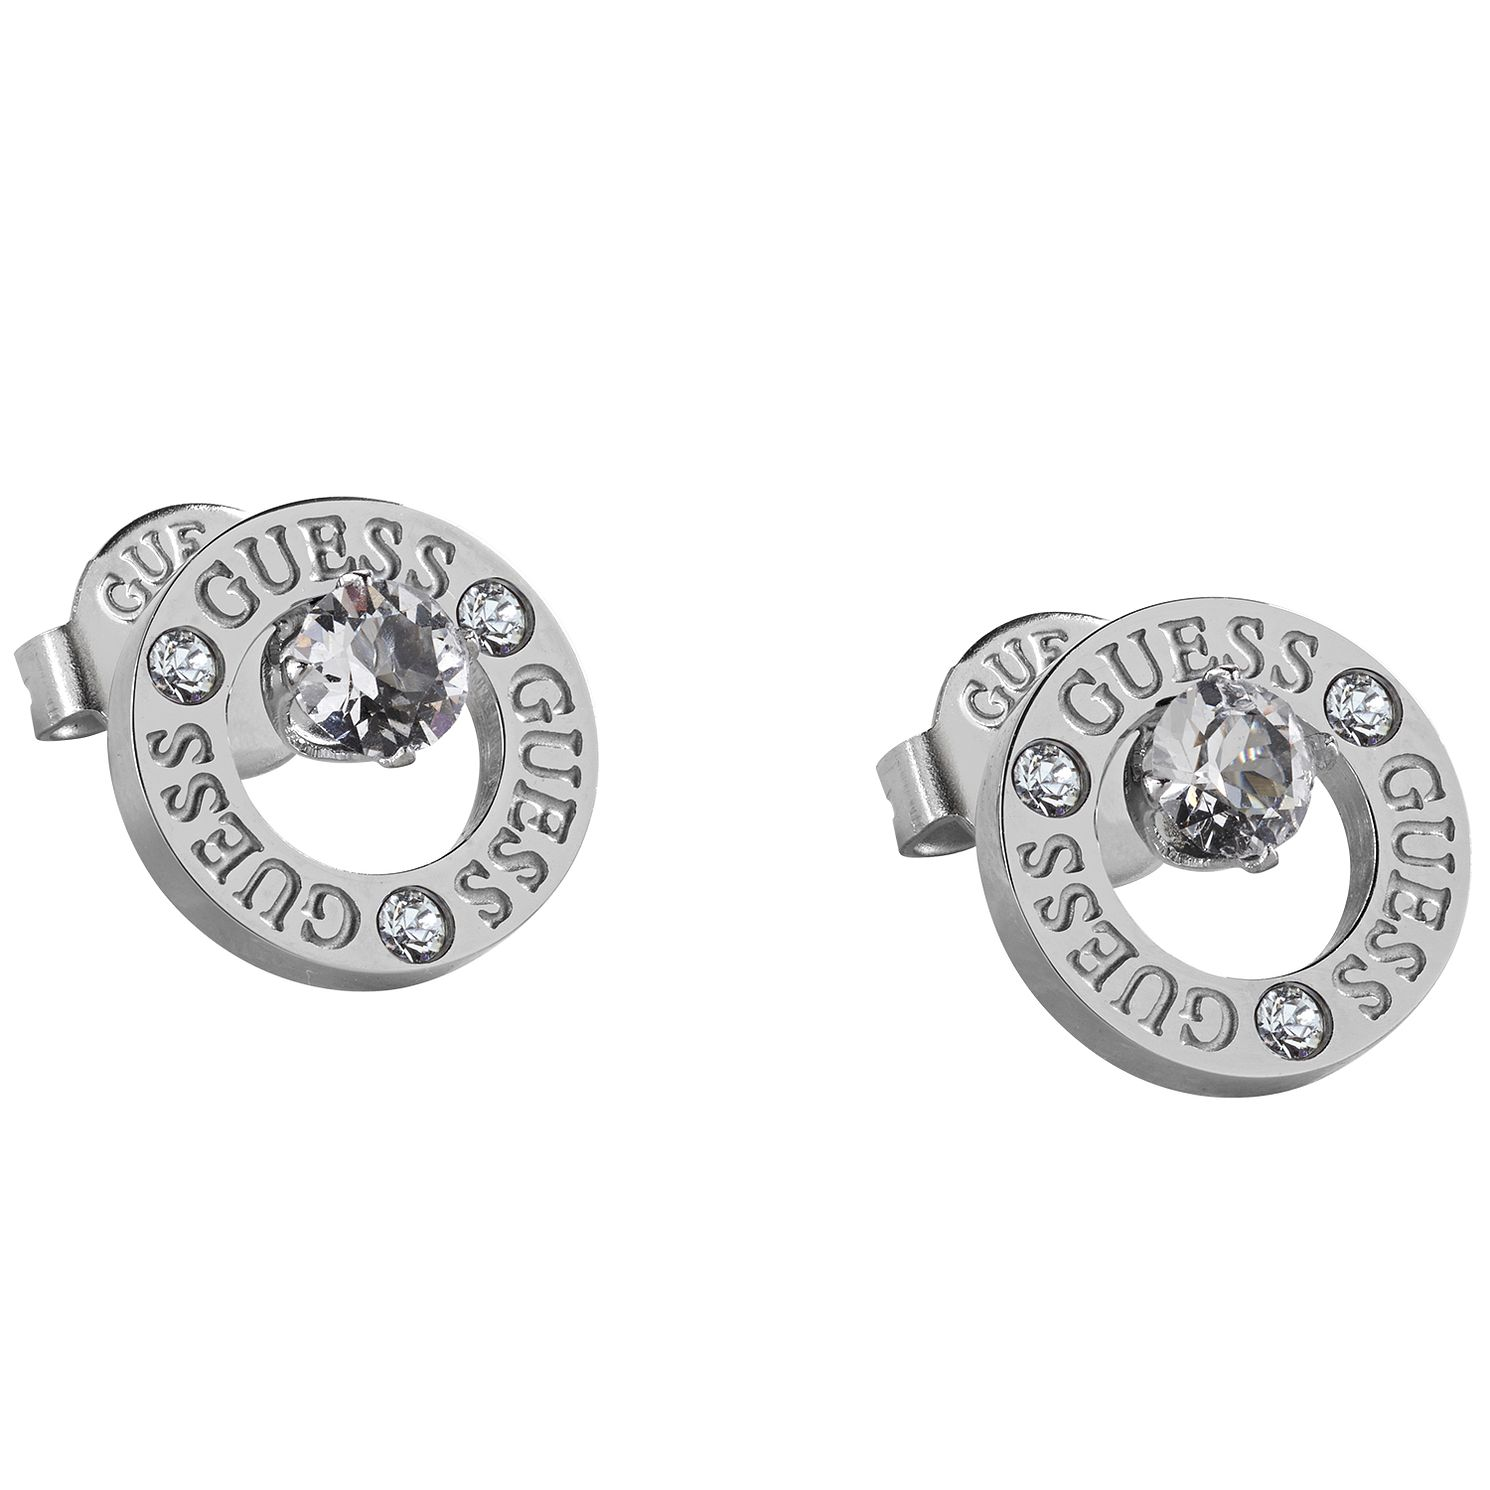 Guess Stainless Steel Crystal Round Stud Earrings - Product number 1193112